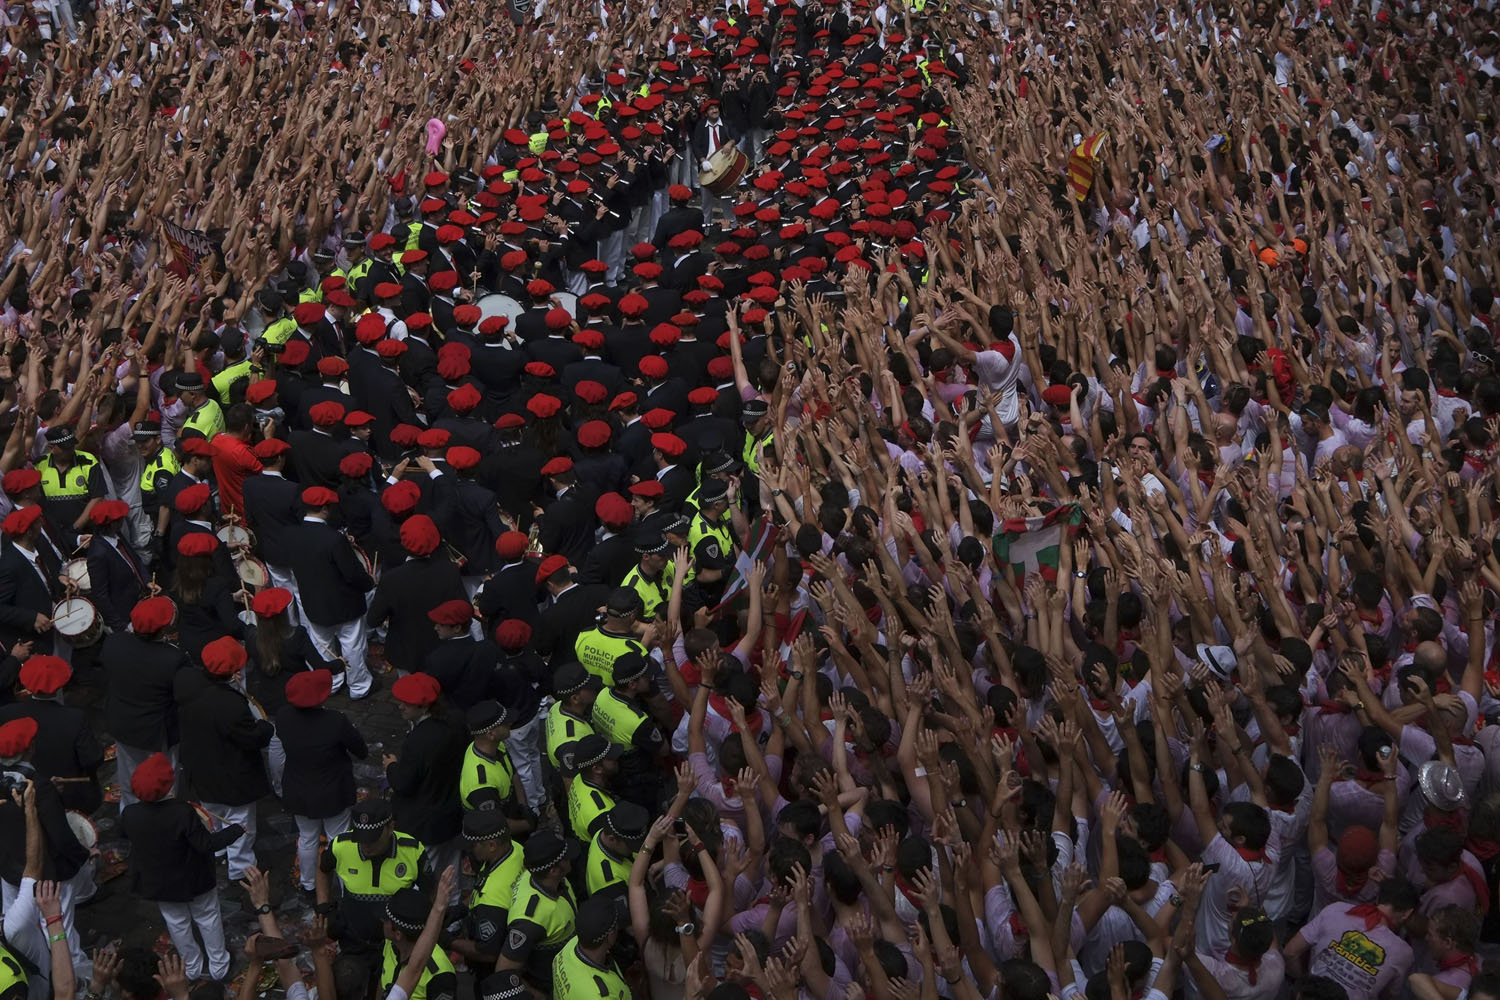 Jul. 6, 2014. A band performs during the  Chupinazo  to mark the start at noon sharp of the San Fermin Festival, in front of the Town Hall of Pamplona, northern Spain.